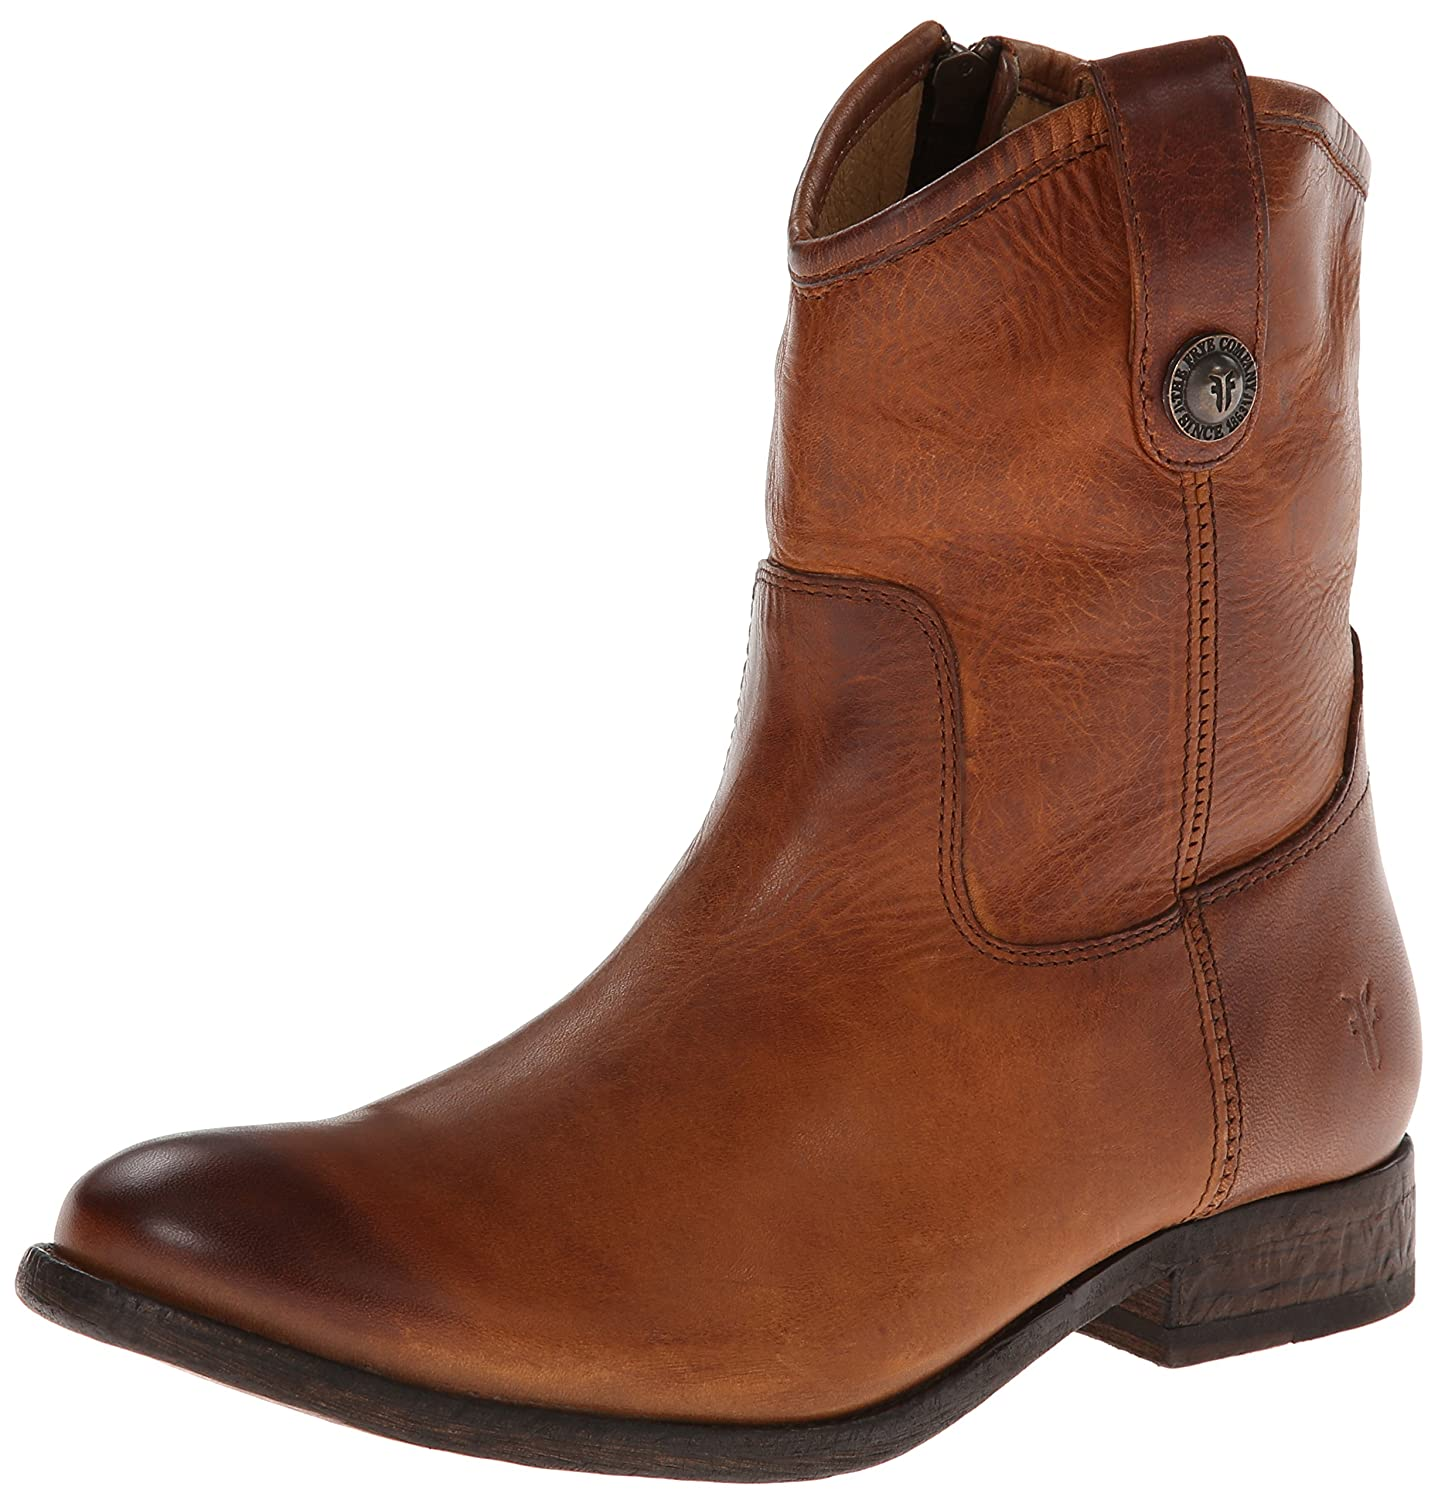 FRYE Women's Melissa Button Short Ankle Boot B00IMIFQC4 5.5 B(M) US|Cognac Washed Antique Pull-up-77908